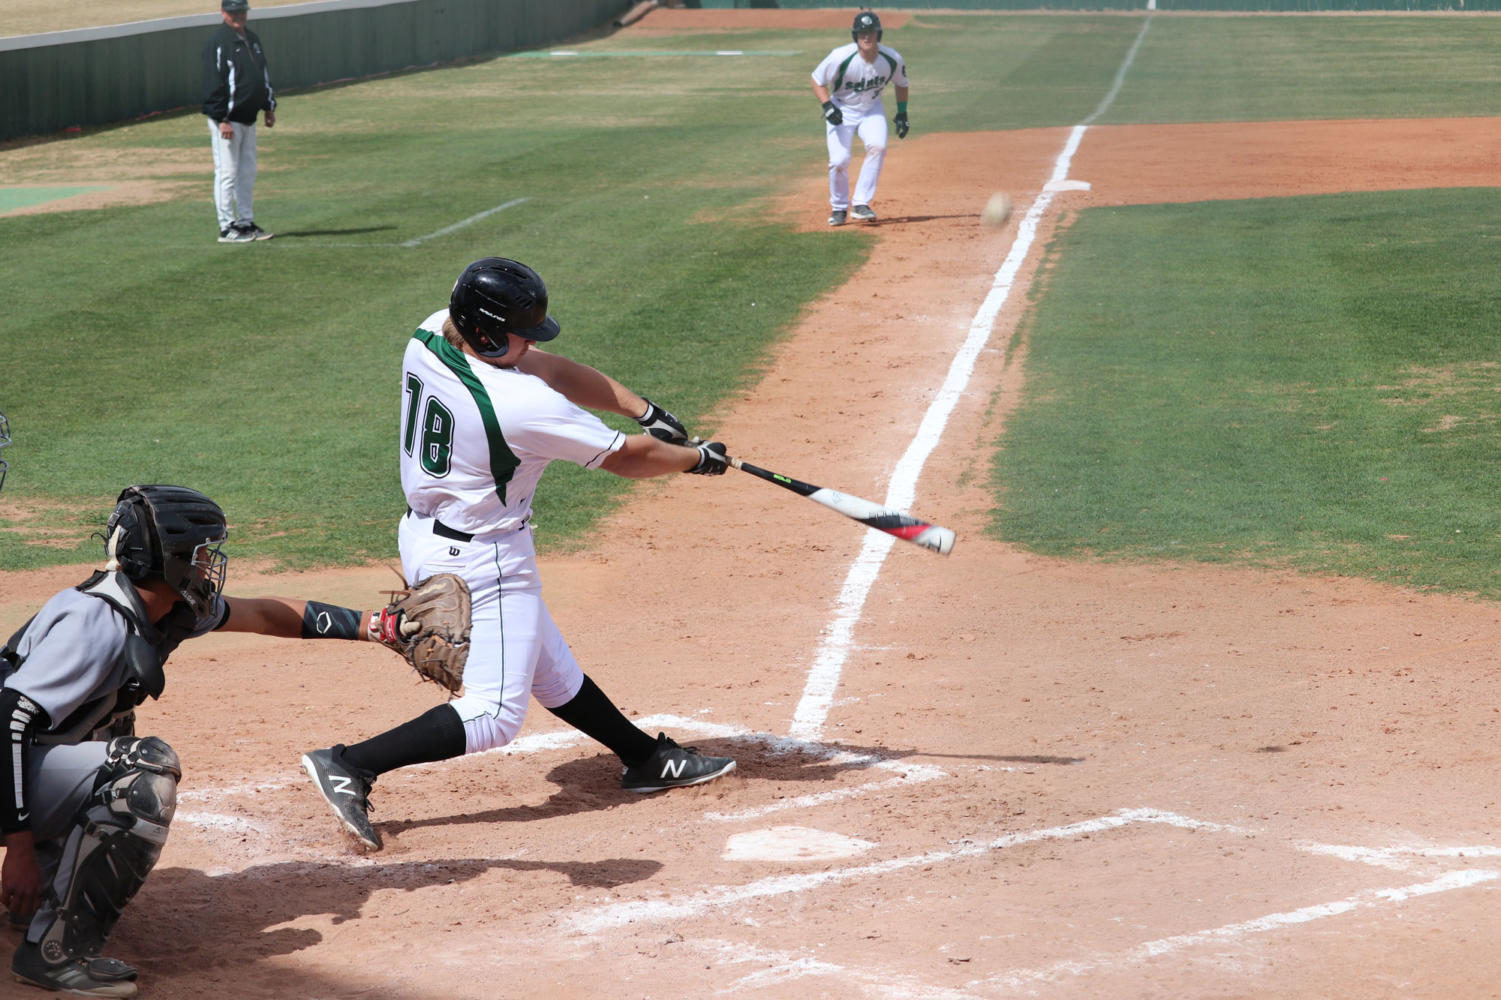 Sophomore, Montana Newell hits a ball towards the left side of the field.